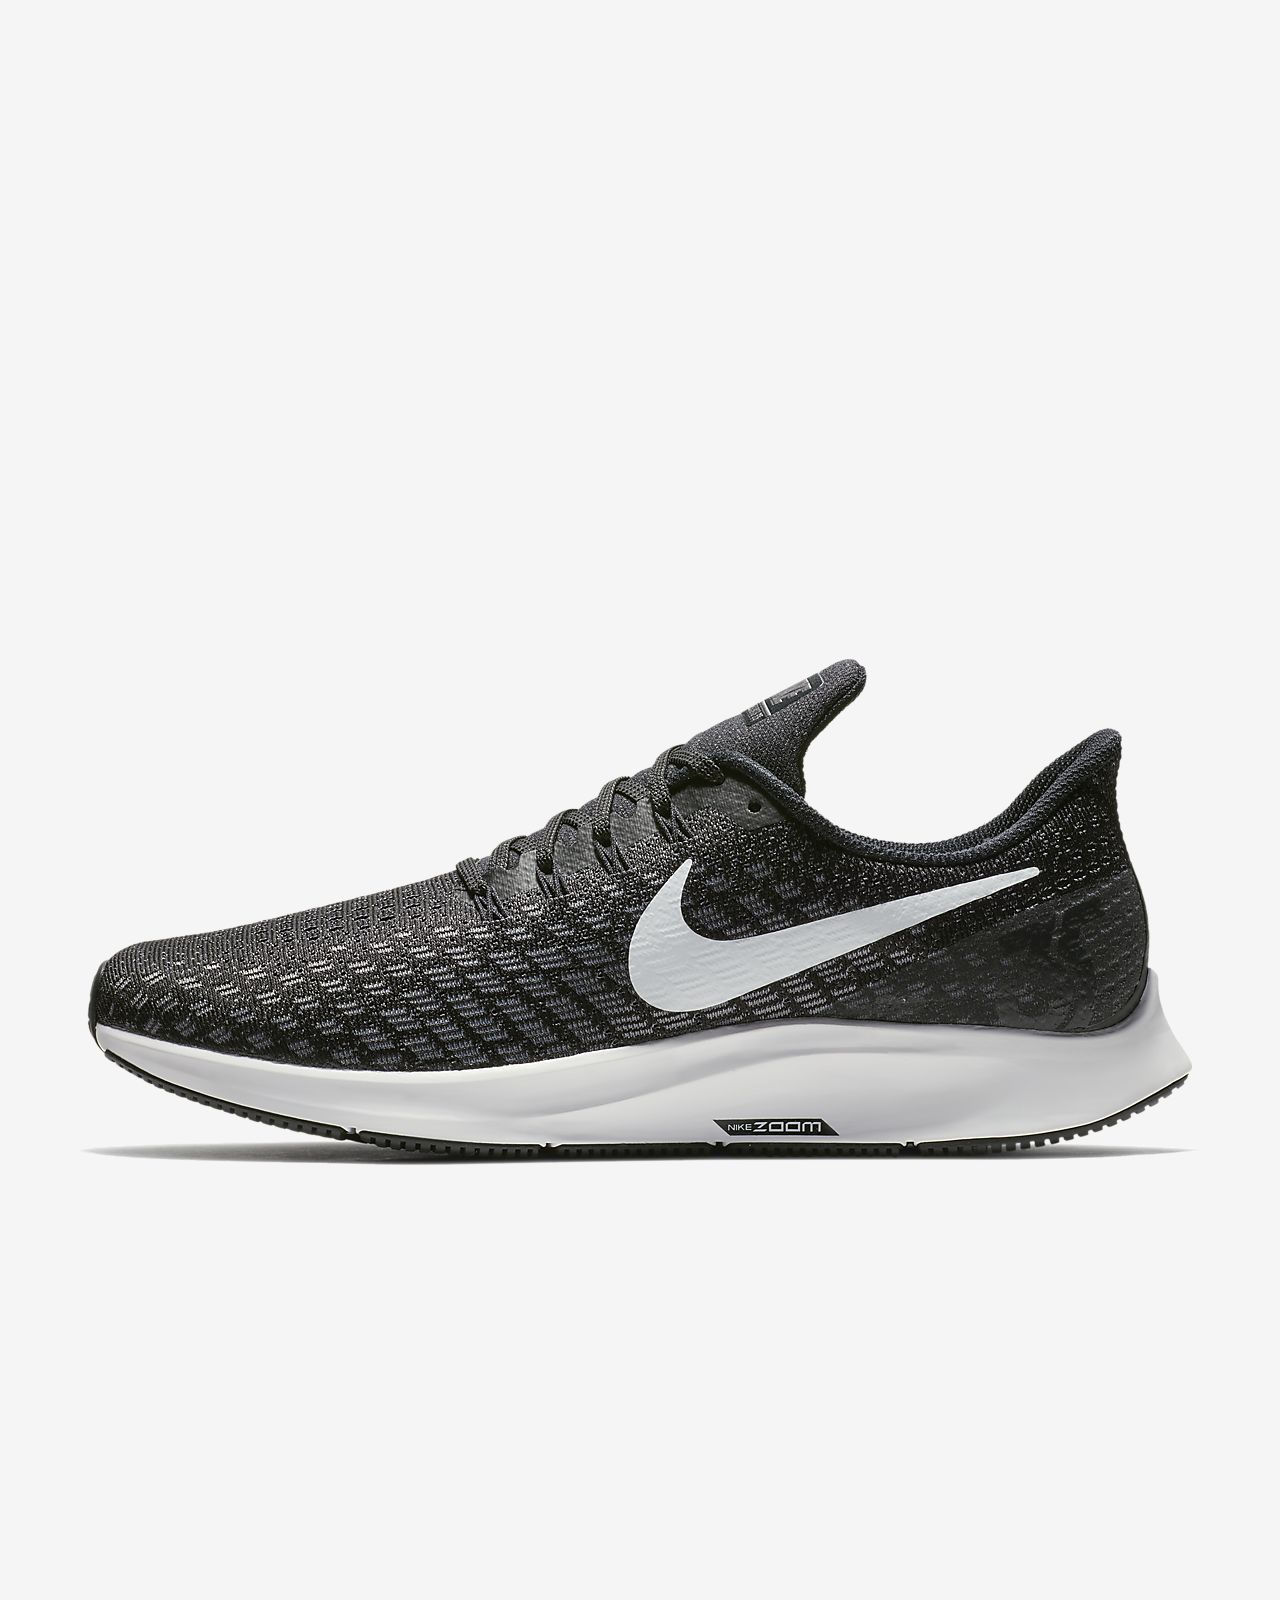 reputable site ee730 6863d ... Nike Air Zoom Pegasus 35 Men s Running Shoe